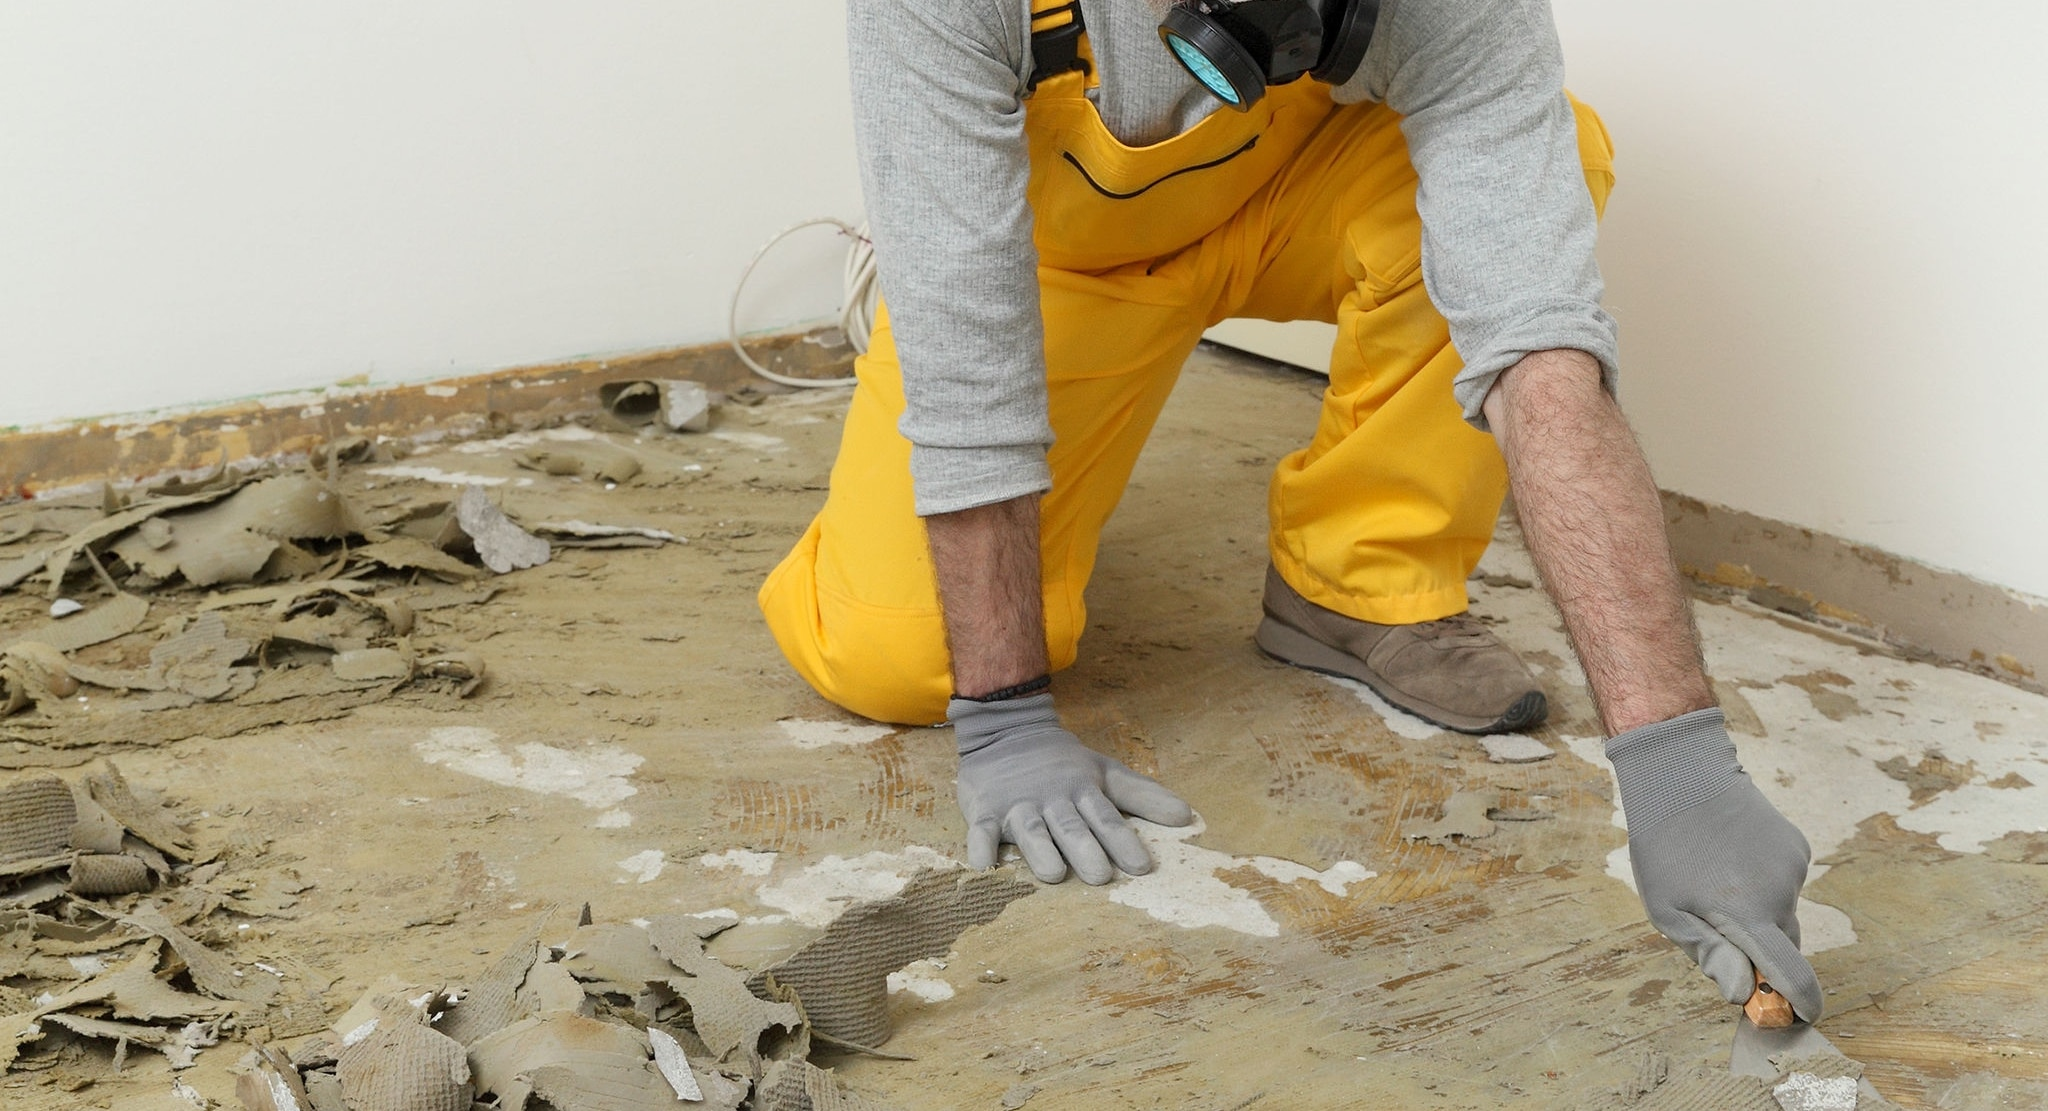 Adult worker with protective mask remove glue and rubber with putty knife from floor